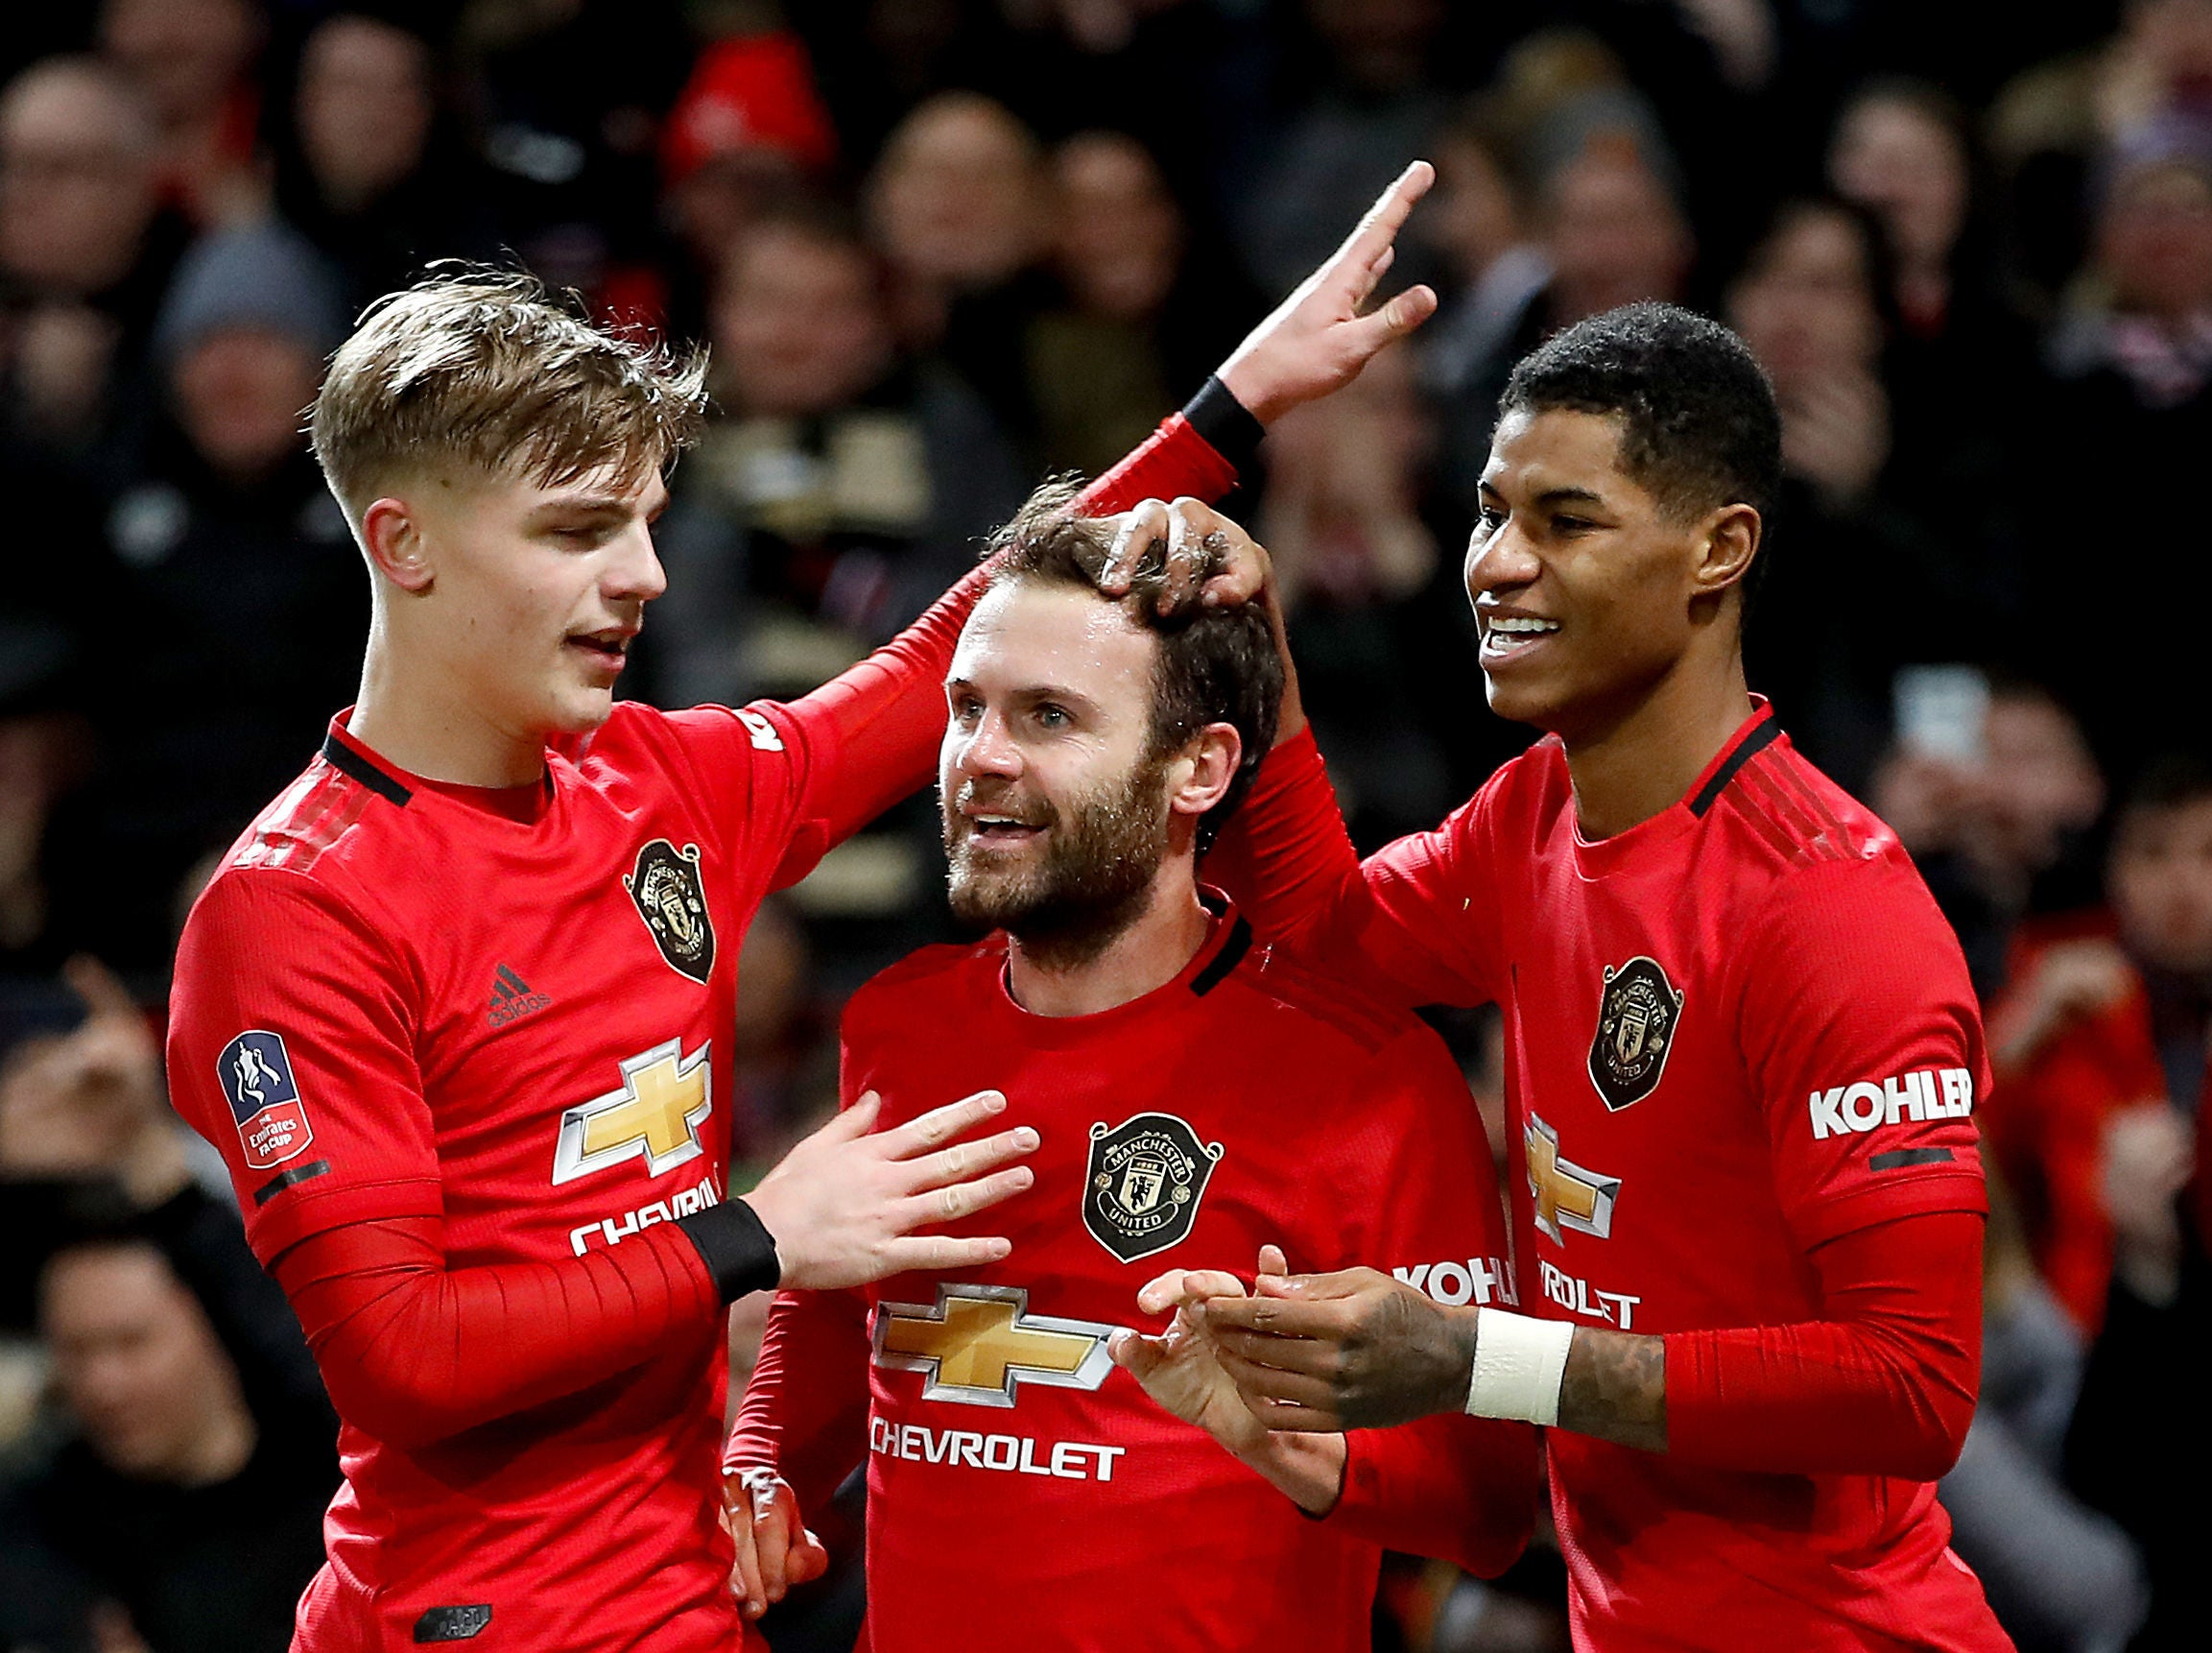 Manchester United 1-0 Wolves: Juan Mata goal sees Spaniard top our player ratings